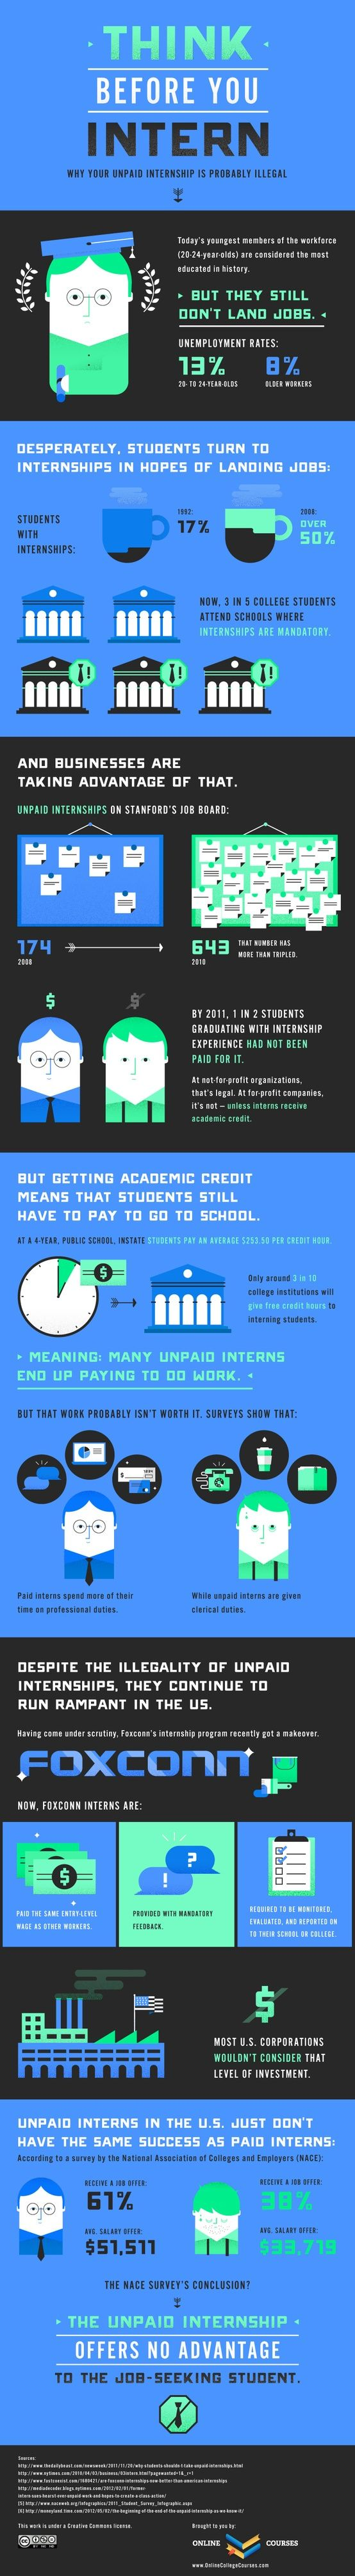 I somewhat agree with this infographic. Not all unpaid internships will have you only doing clerical tasks and some do lead to reasonable jobs with very decent salaries.